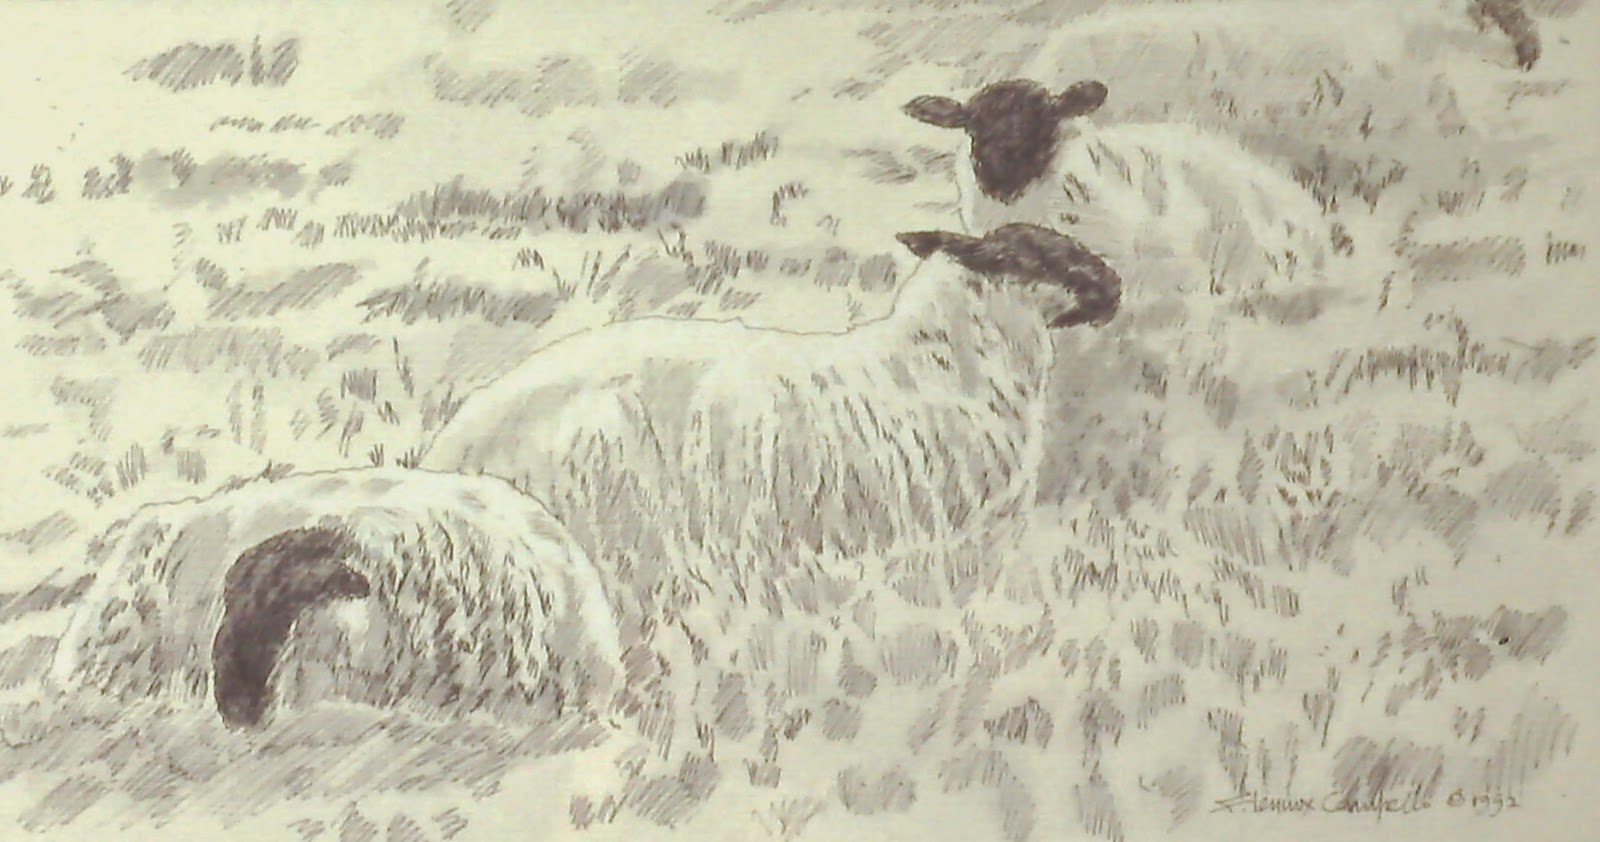 Blackface Highlanders, near Glamis Castle, Forfar, Angus, Scotland  20x40 inches. Pen and ink wash on paper, c. 1992 by F. Lennox Campello